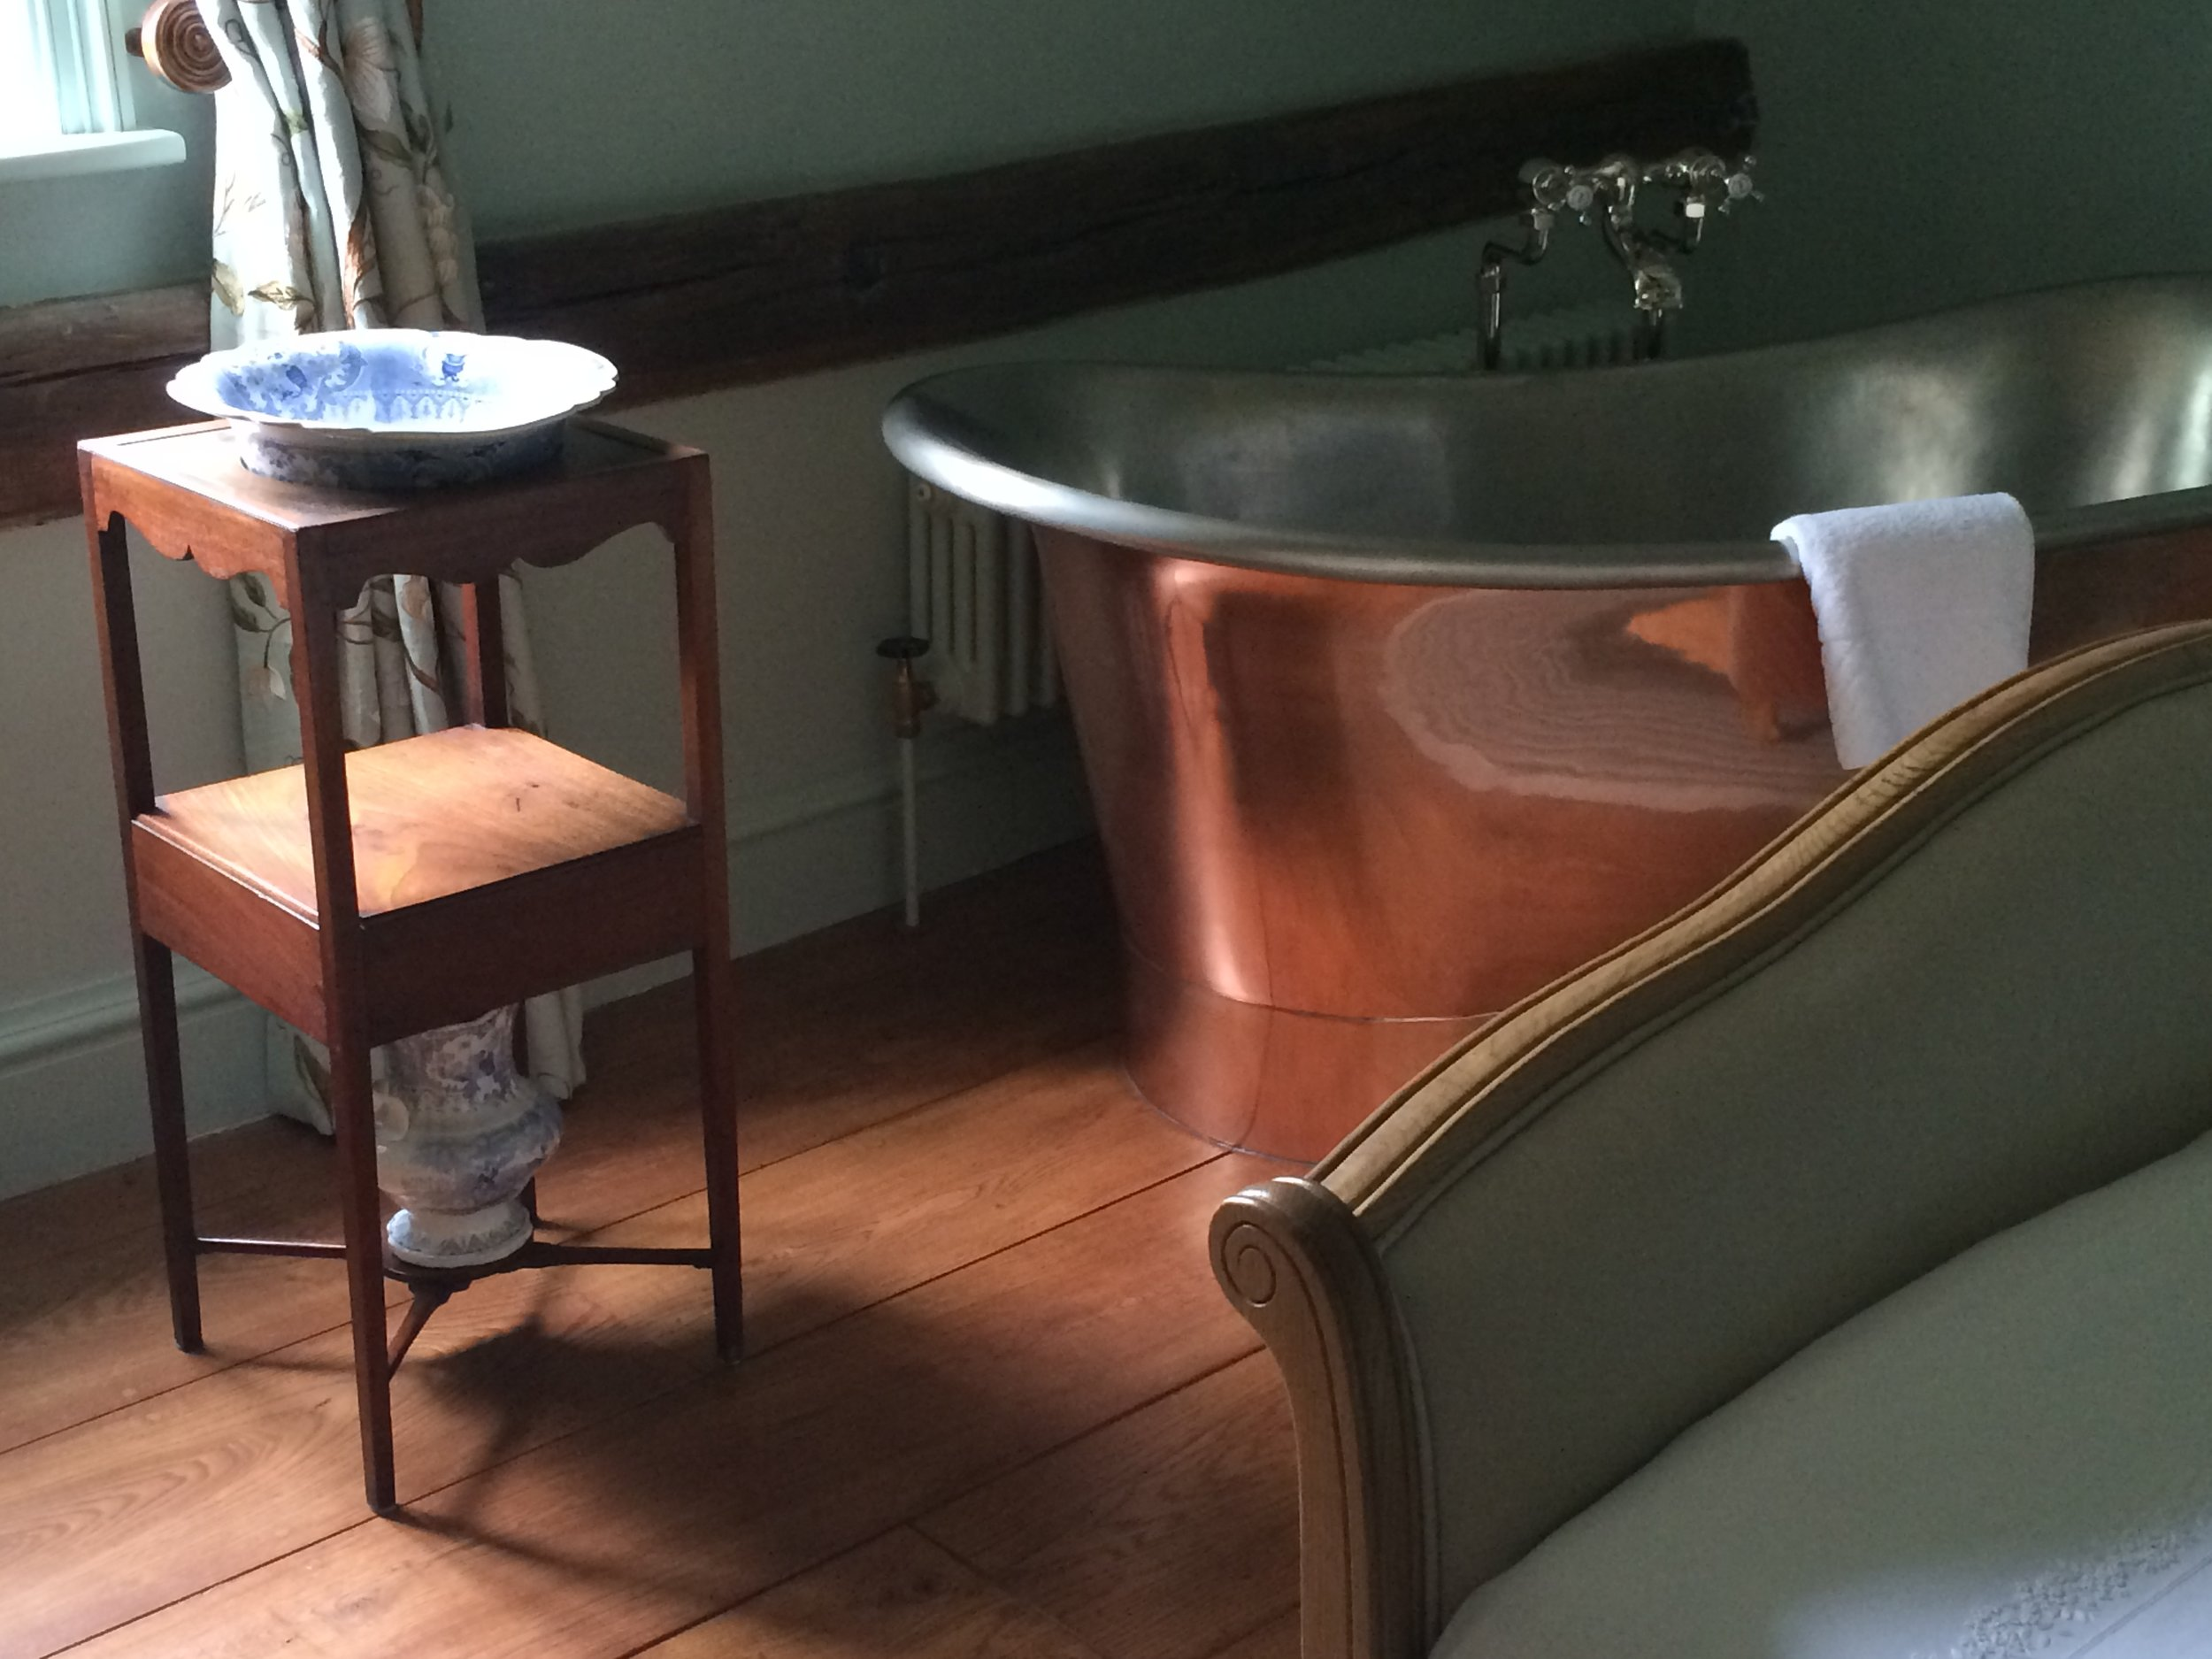 Copper bath in bedroom.